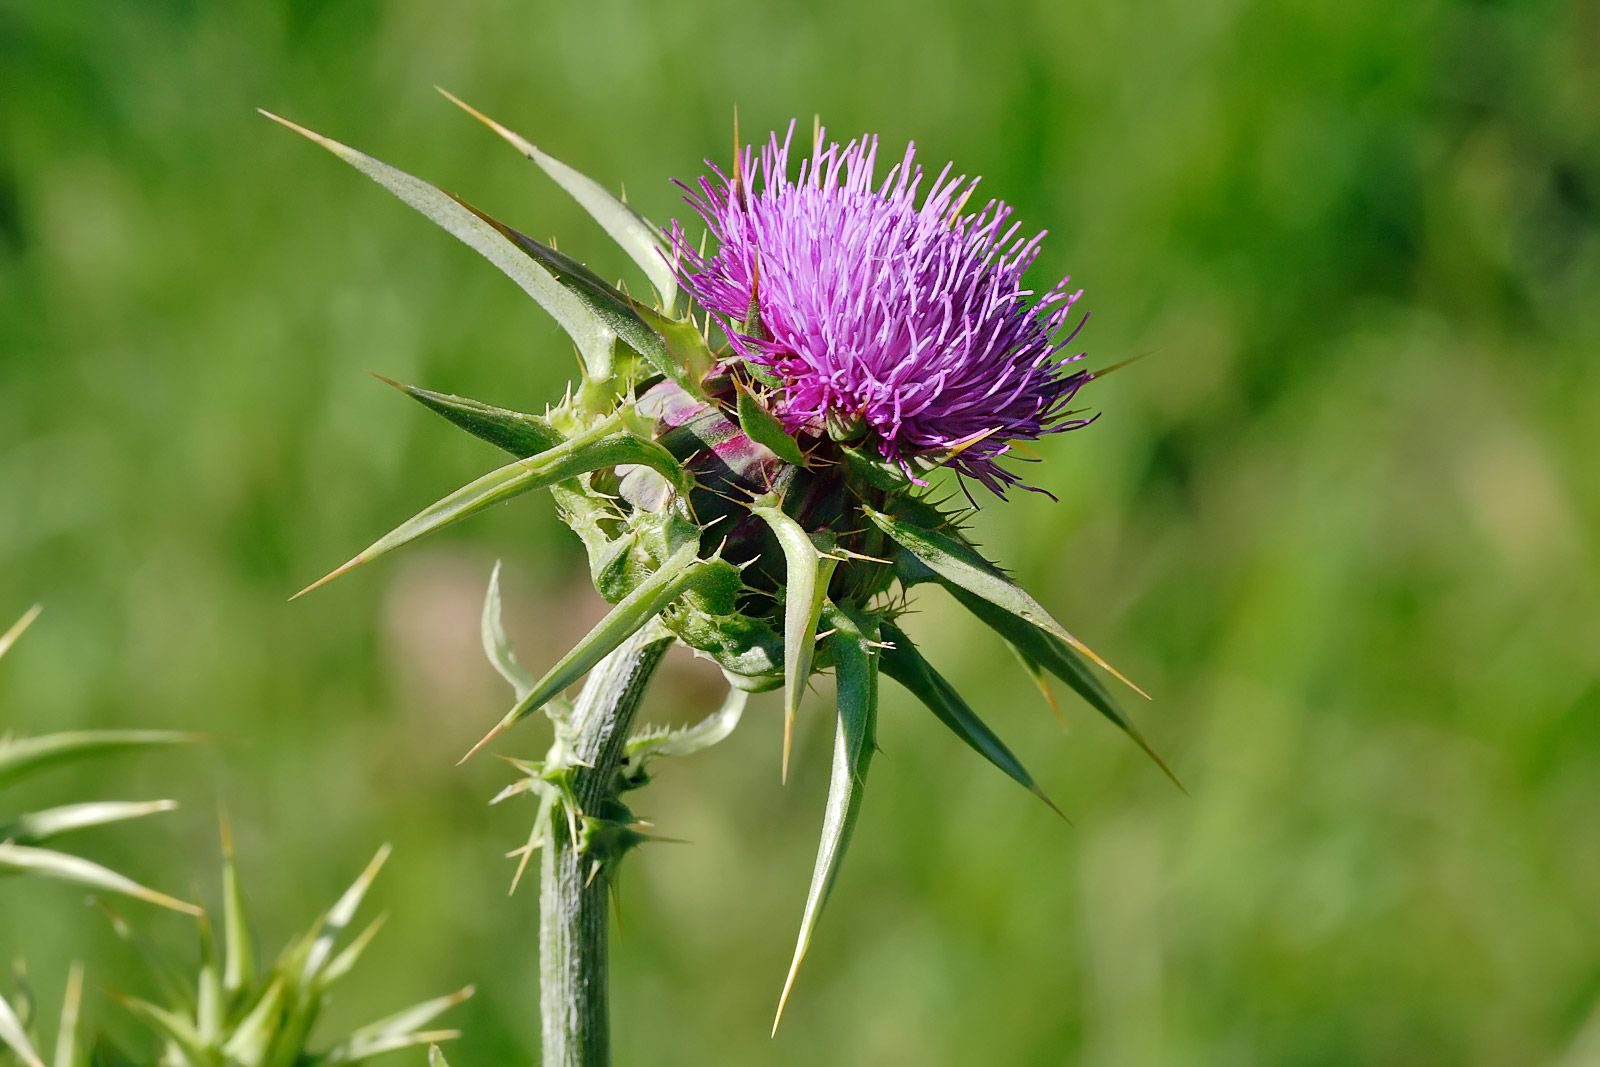 Milk thistle flowerhead - Happy St. Paddy's! Let's talk about your liver.